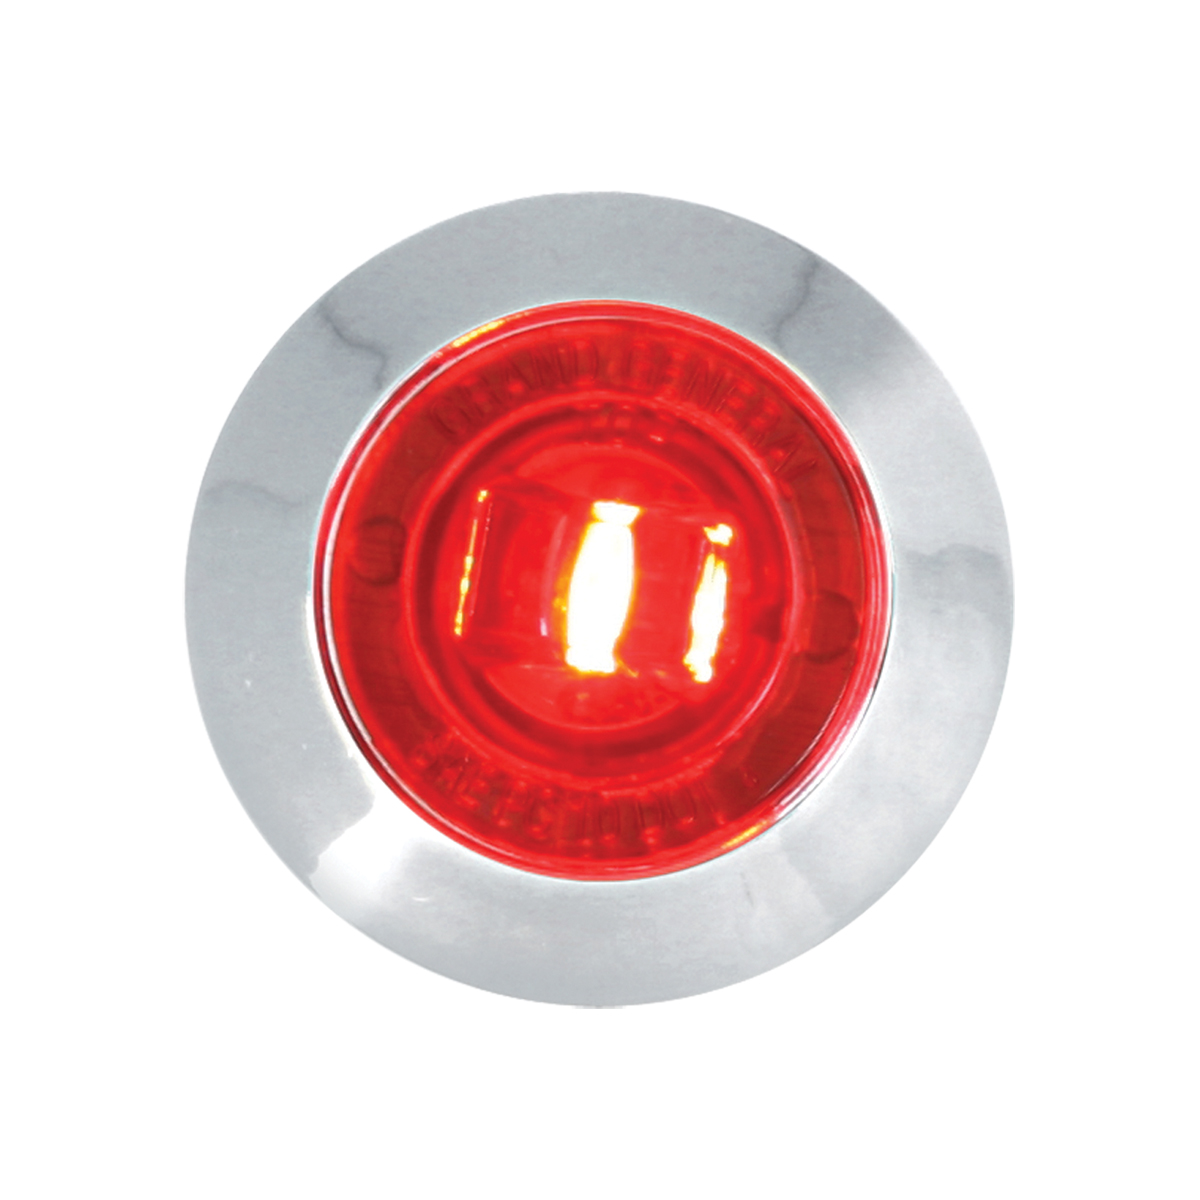 "75222 1-1/4"" Dia. Dual Function LED Light with Chrome Plastic Bezel and Nut"